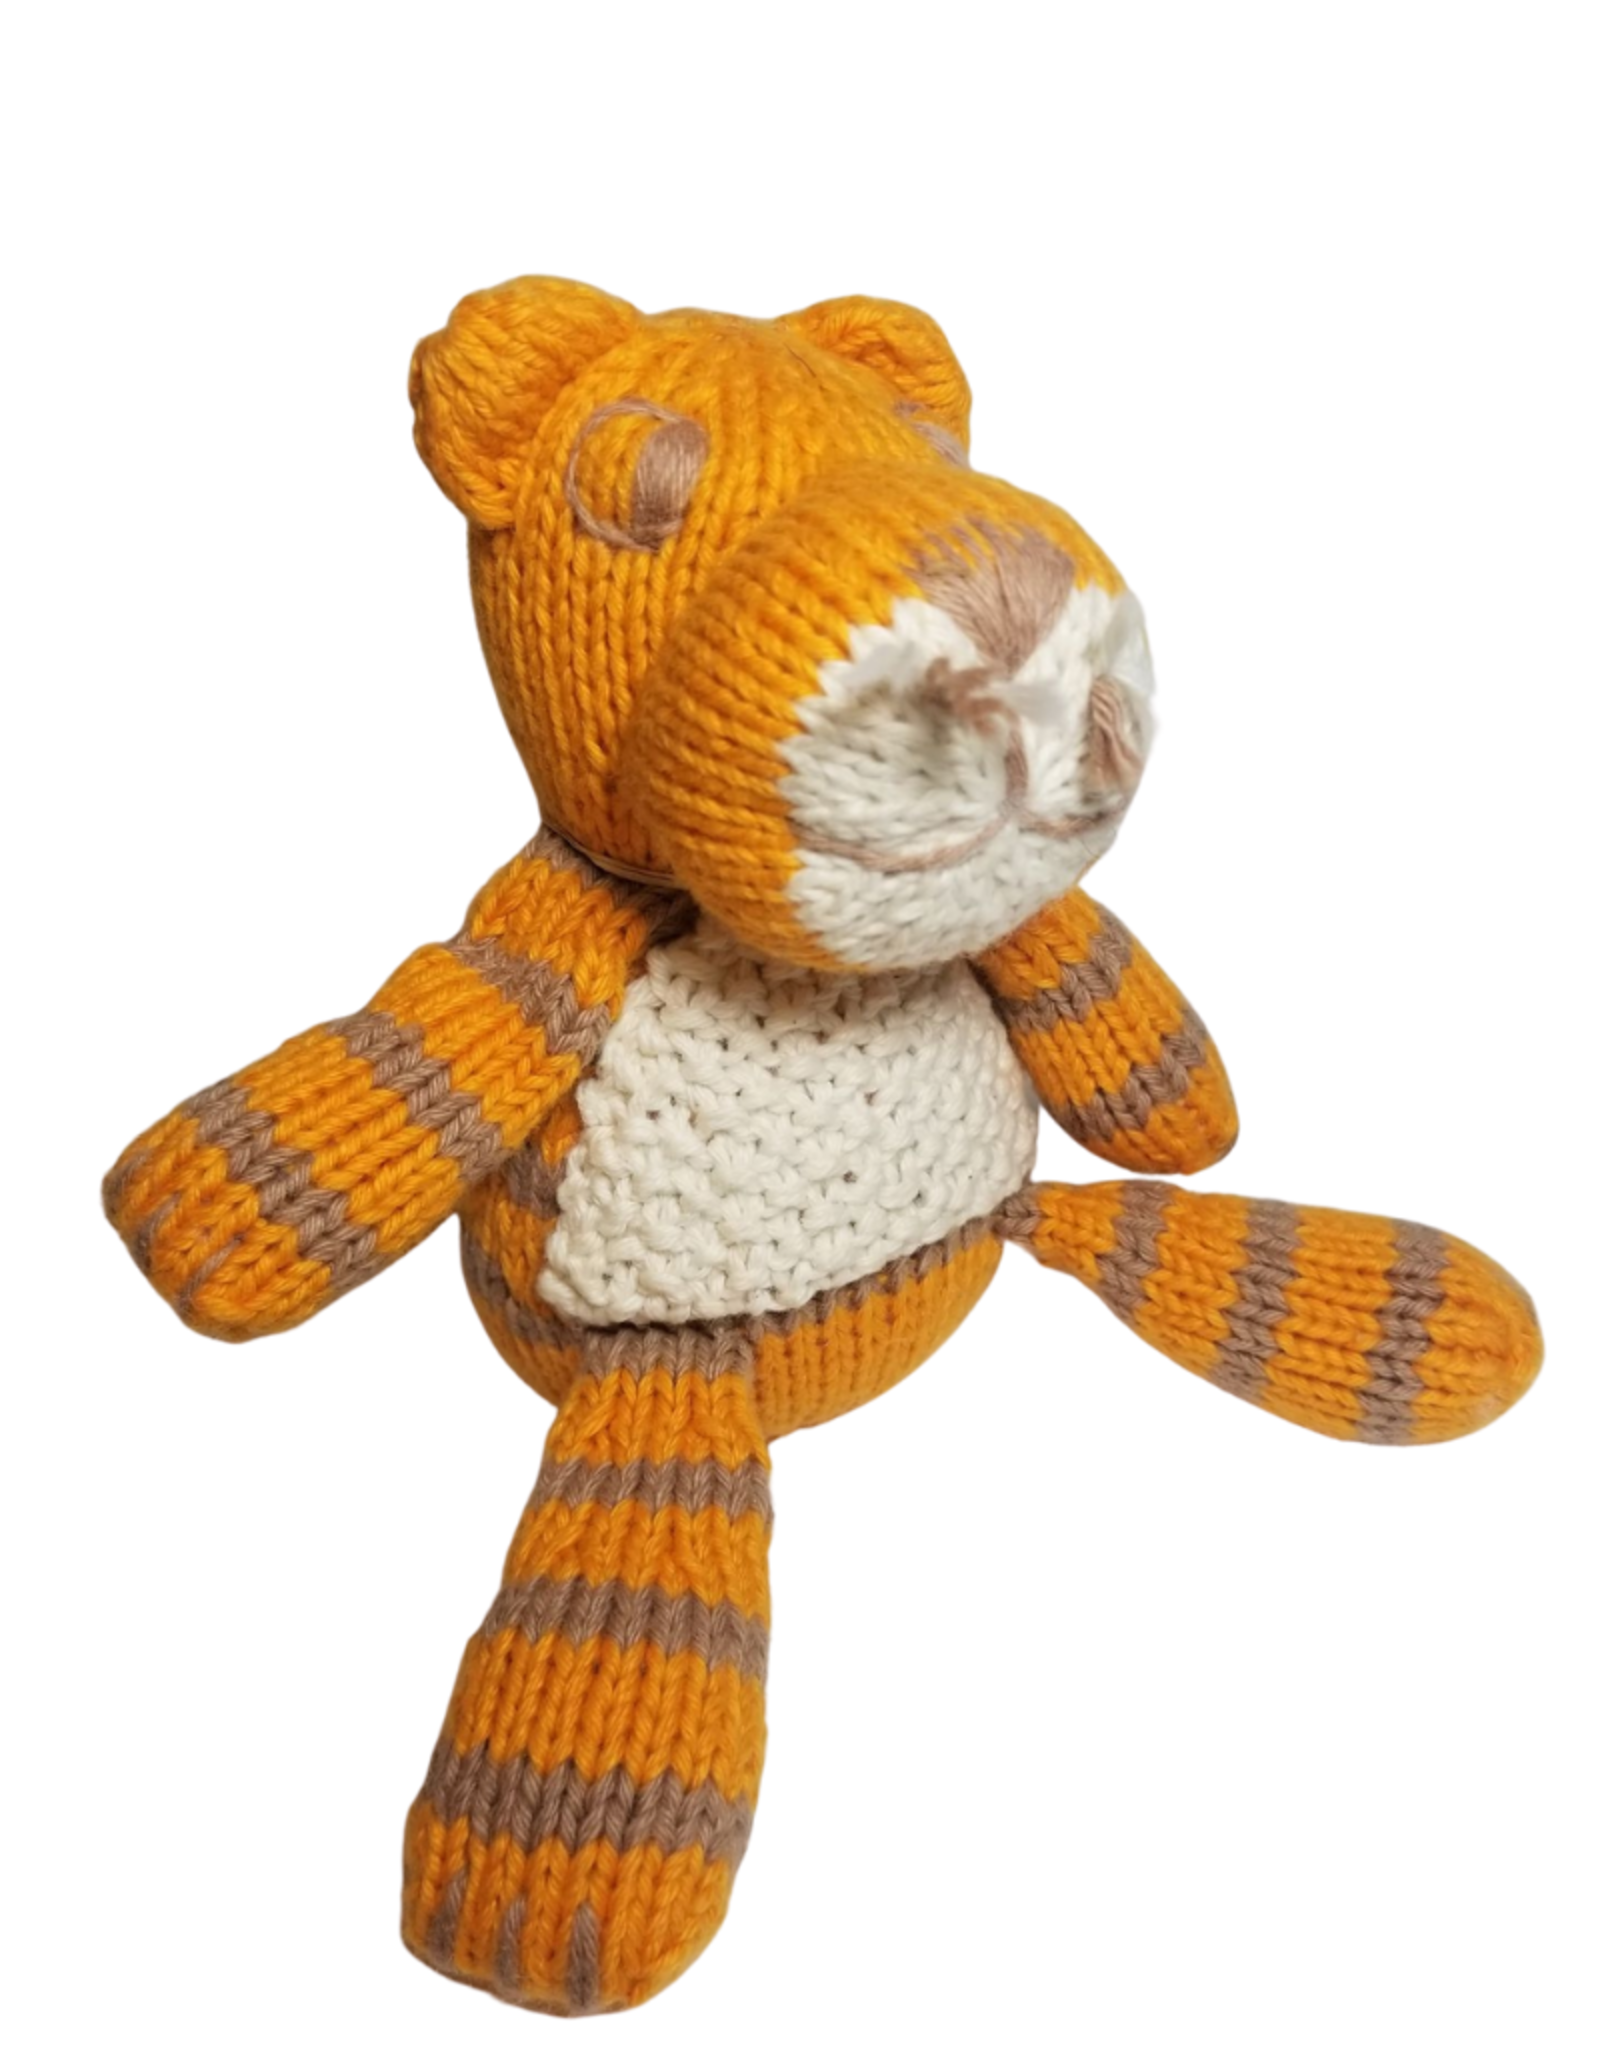 Eco Fair Stuffed Animal Tiger